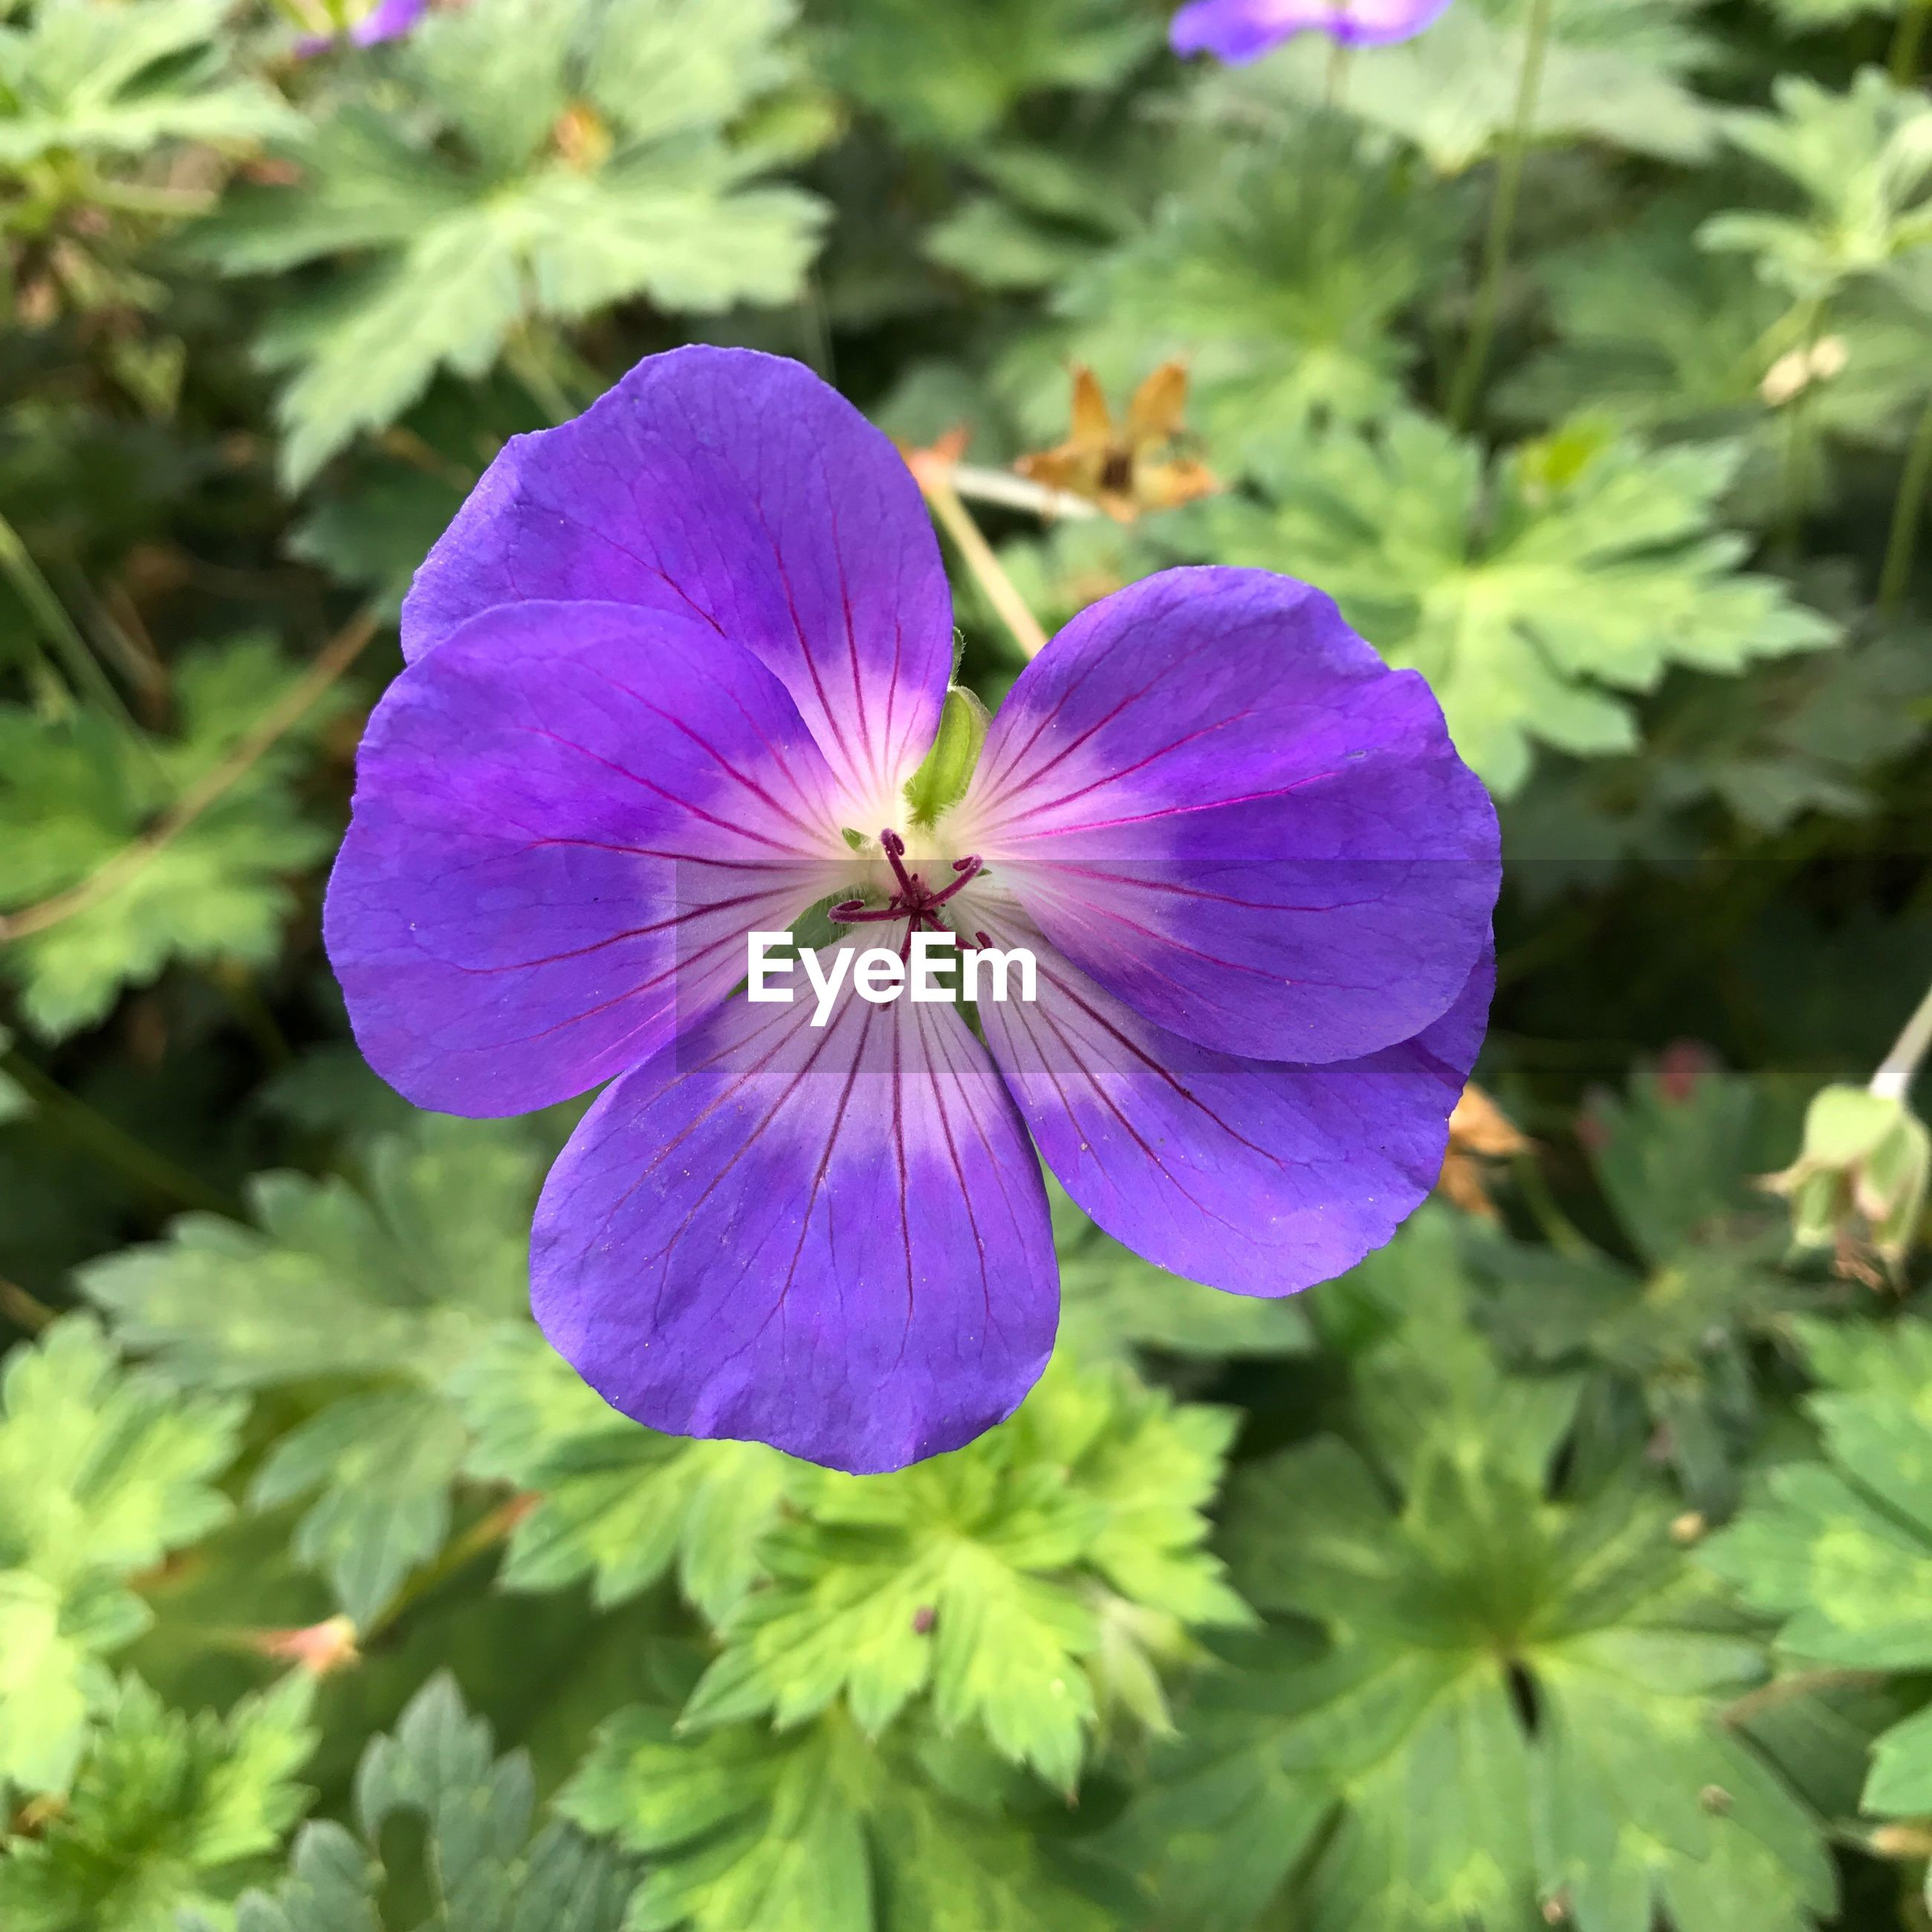 CLOSE-UP OF FRESH PURPLE FLOWER BLOOMING IN NATURE